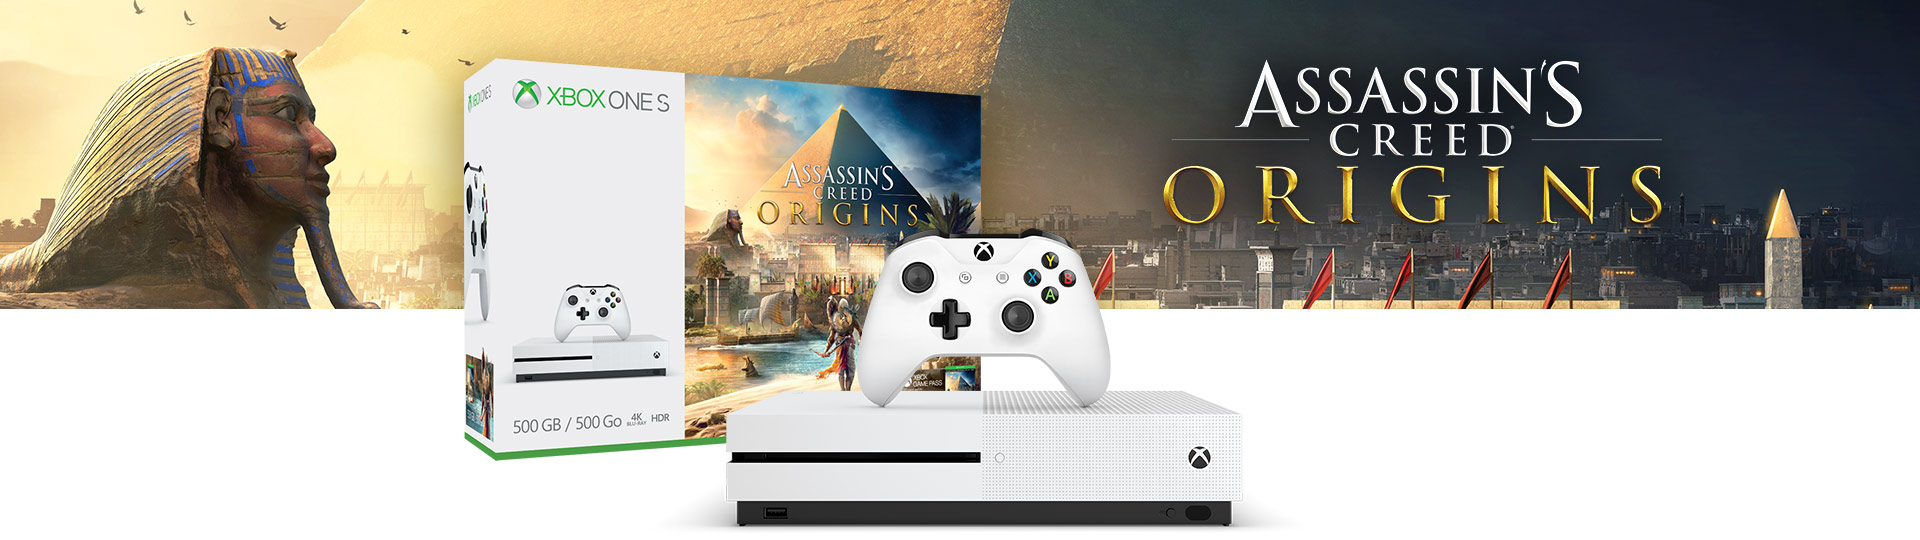 Zestaw Xbox One S Assassin's Creed: Origins (500 GB)